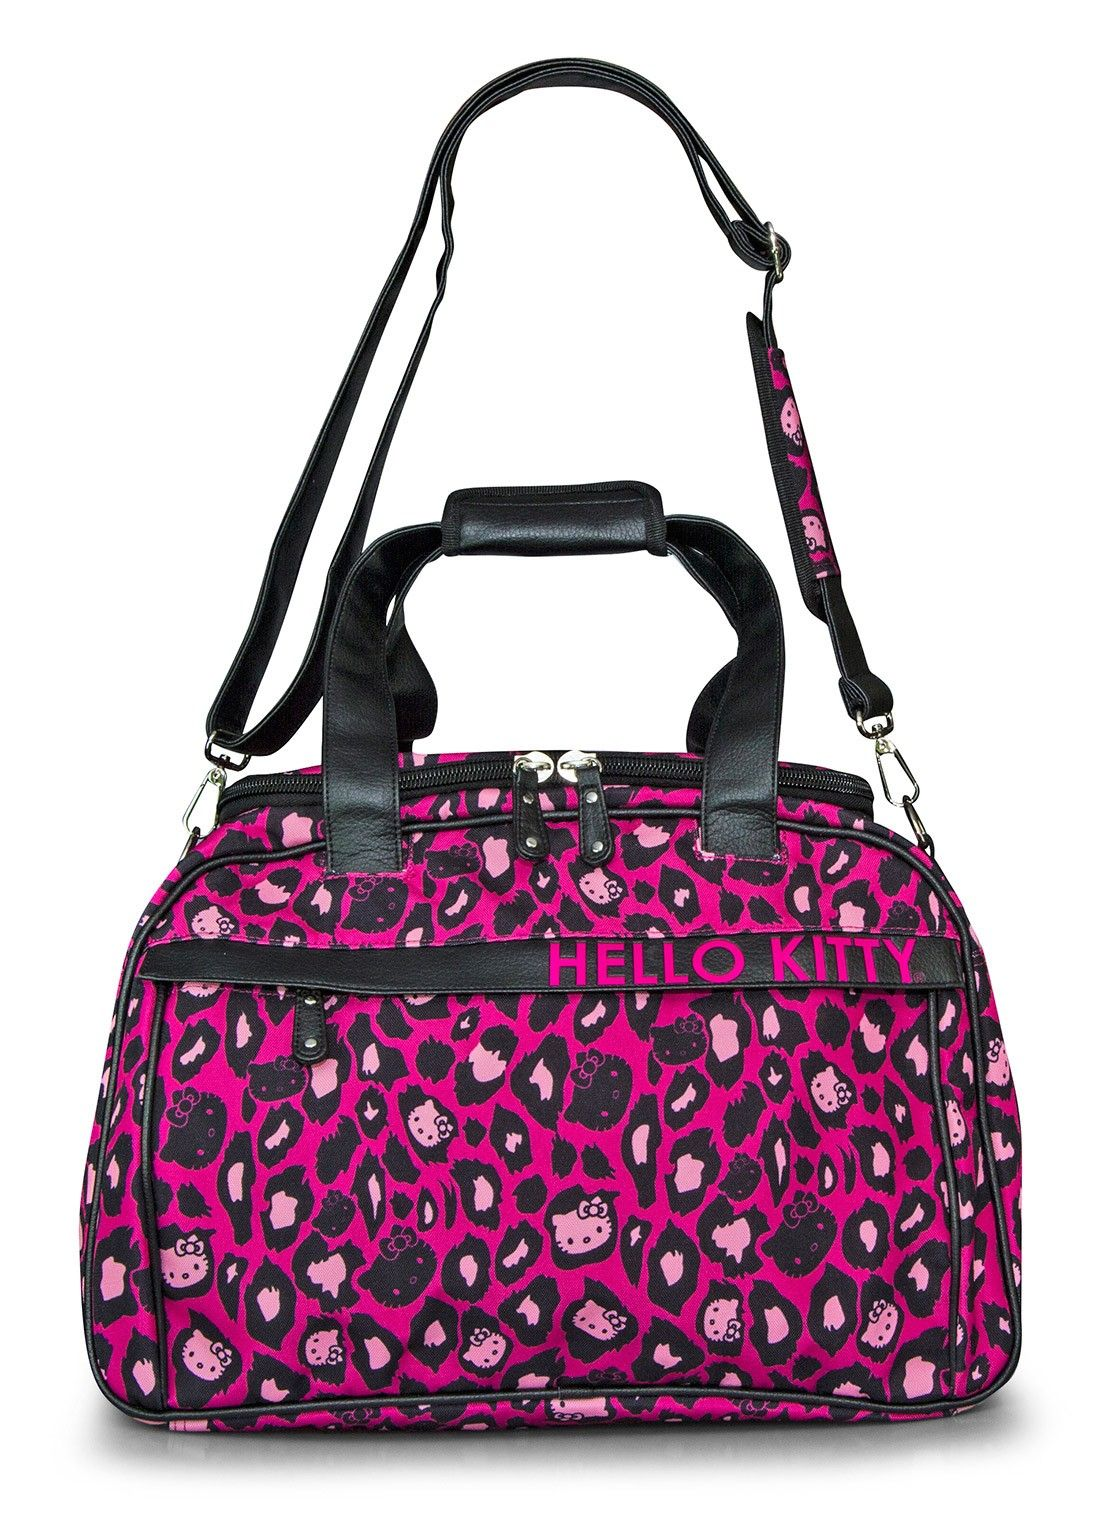 5211b1c5cf Hello Kitty Pink Leopard Print Duffle - Travel Bags Luggage - Bags ...